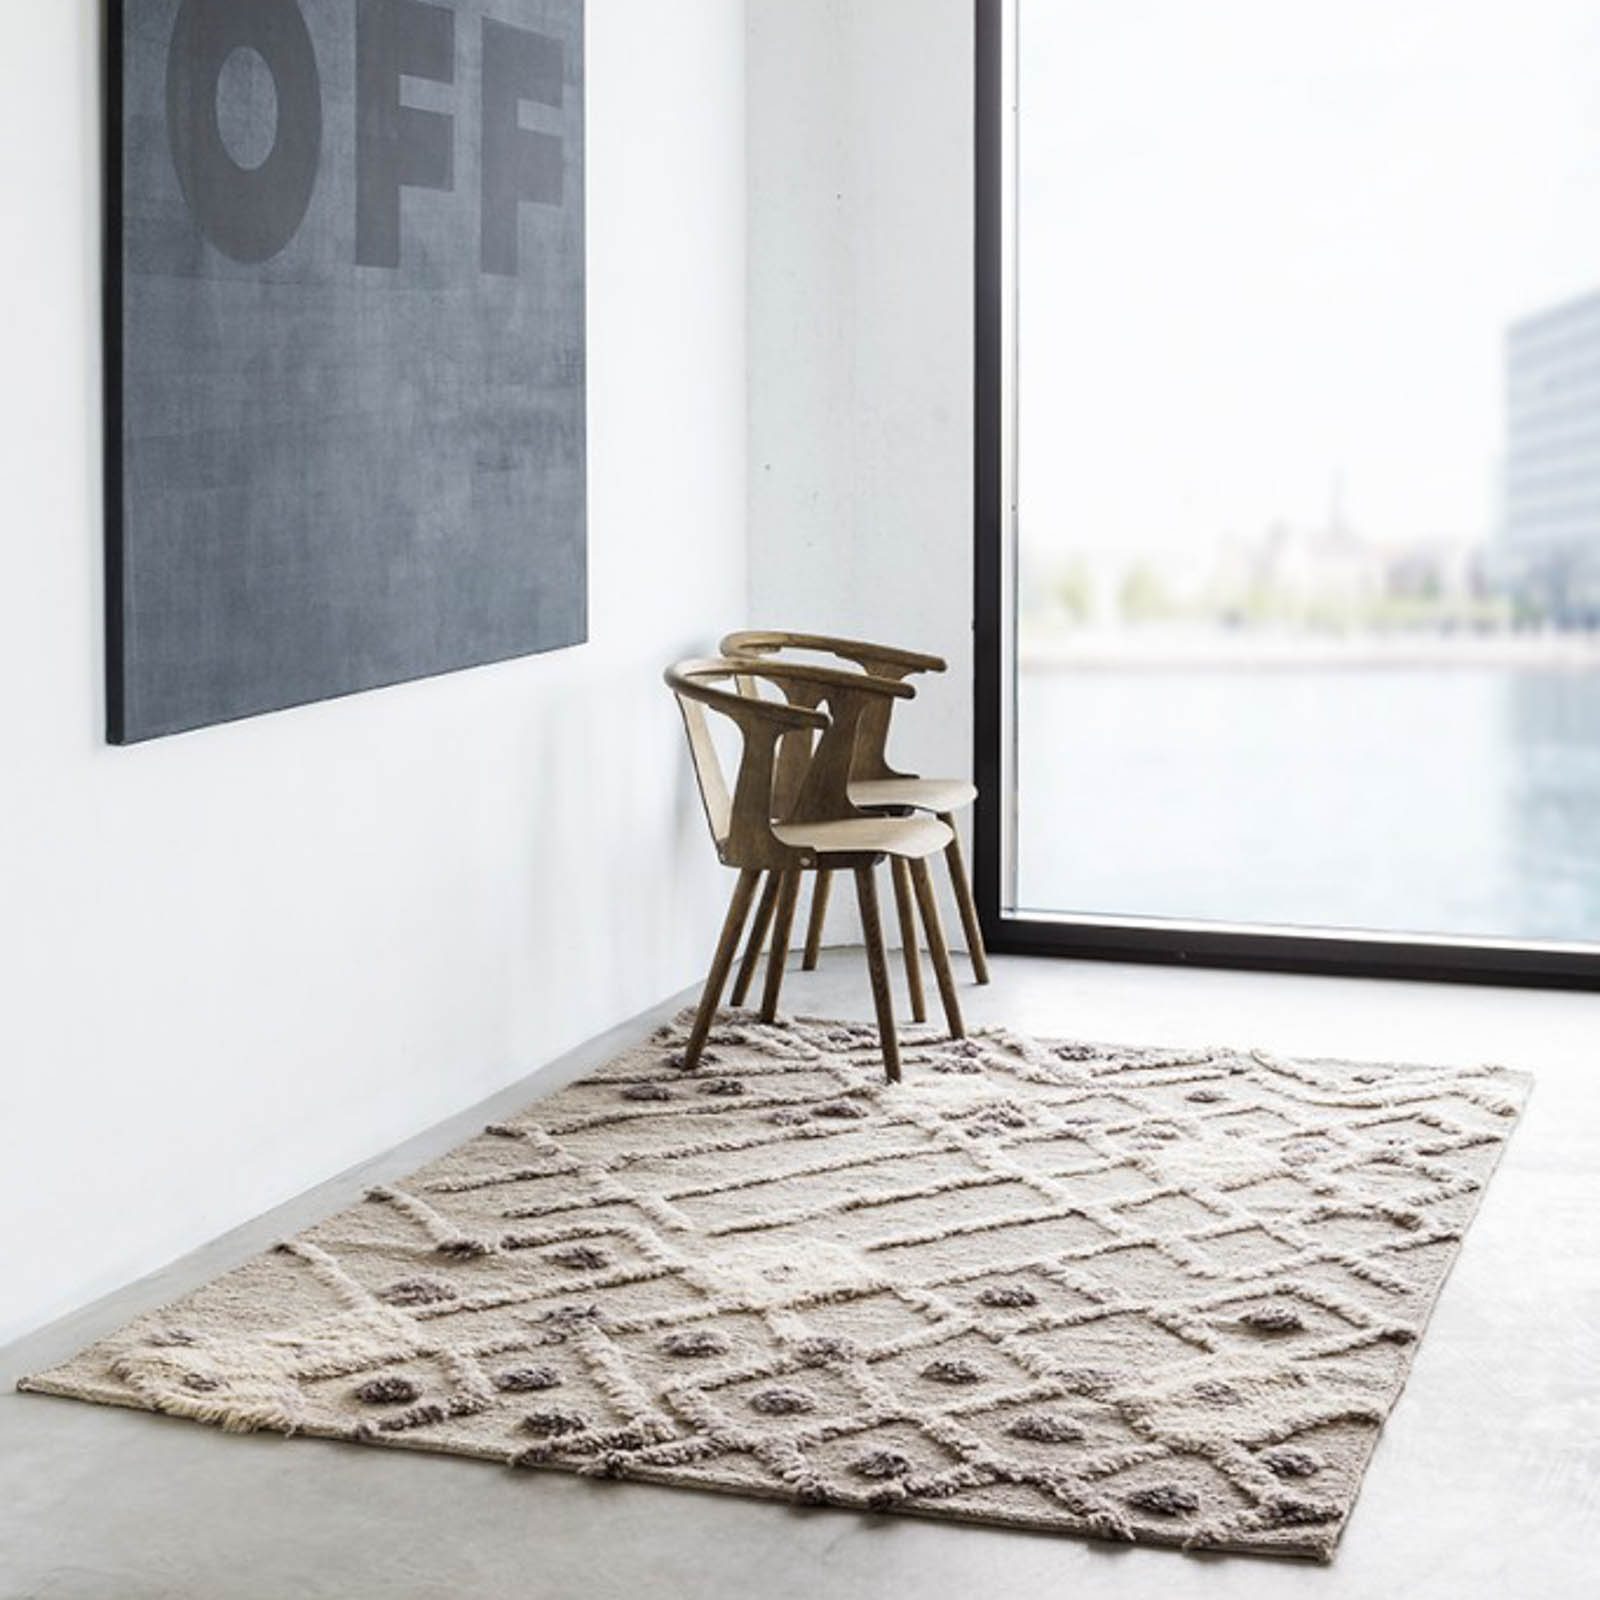 Bur-Bur Rugs in Natural by Massimo